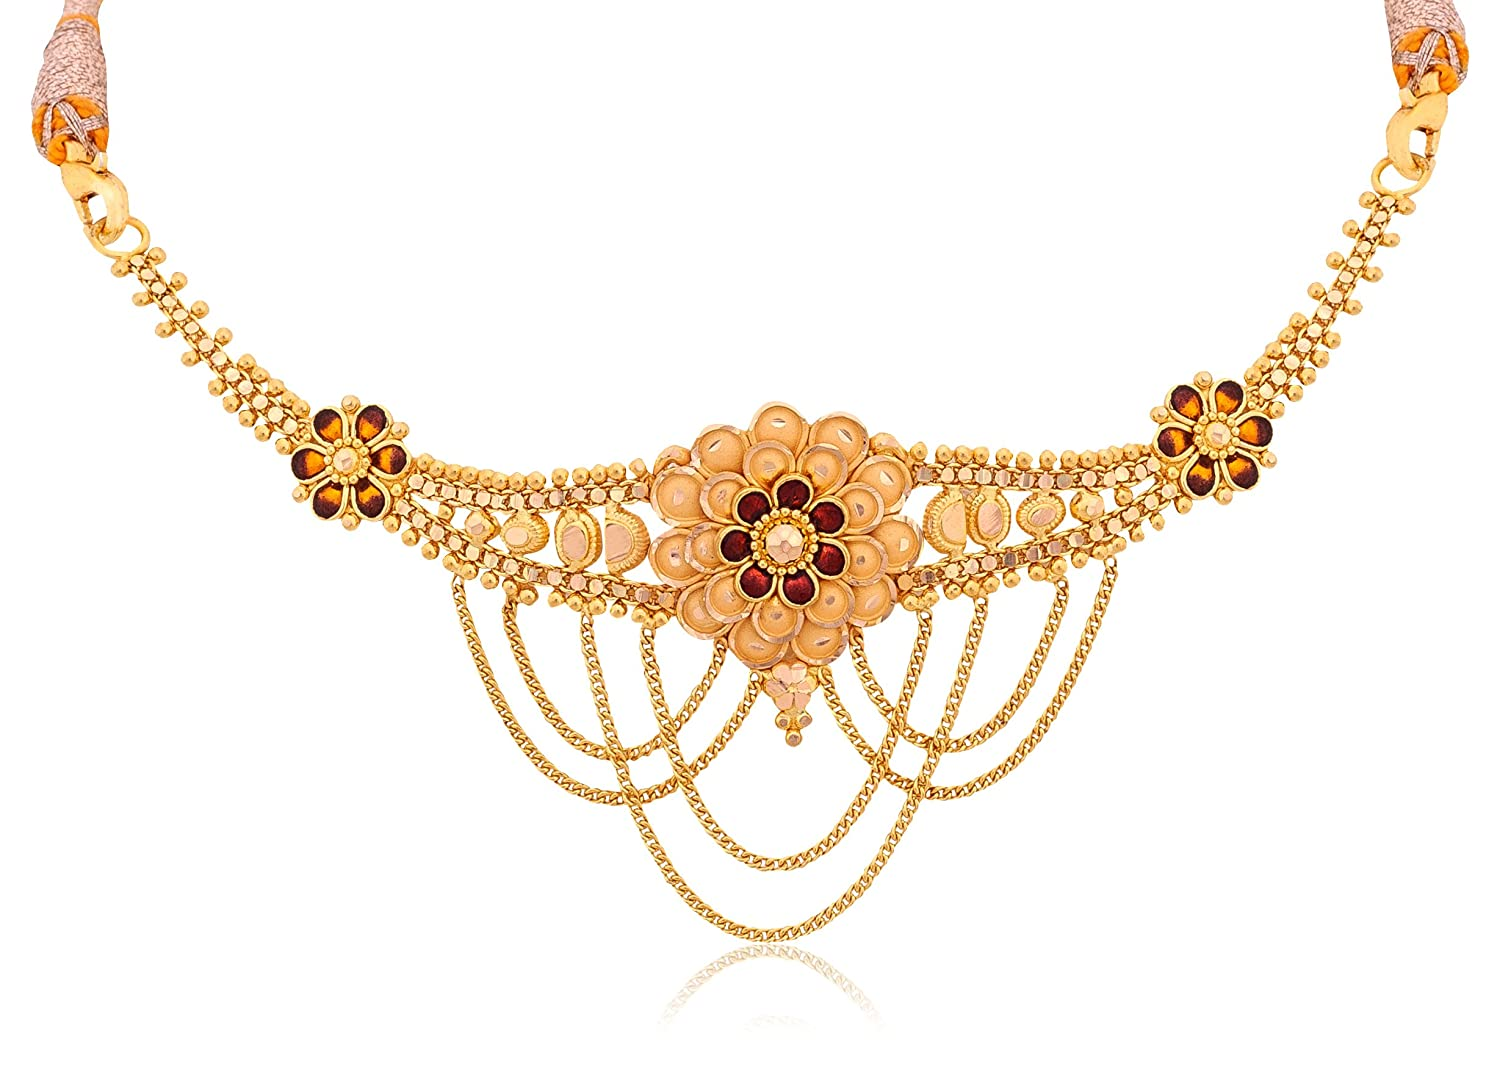 Buy Senco Gold 22k Yellow Gold Choker Necklace Online at Low Prices ...